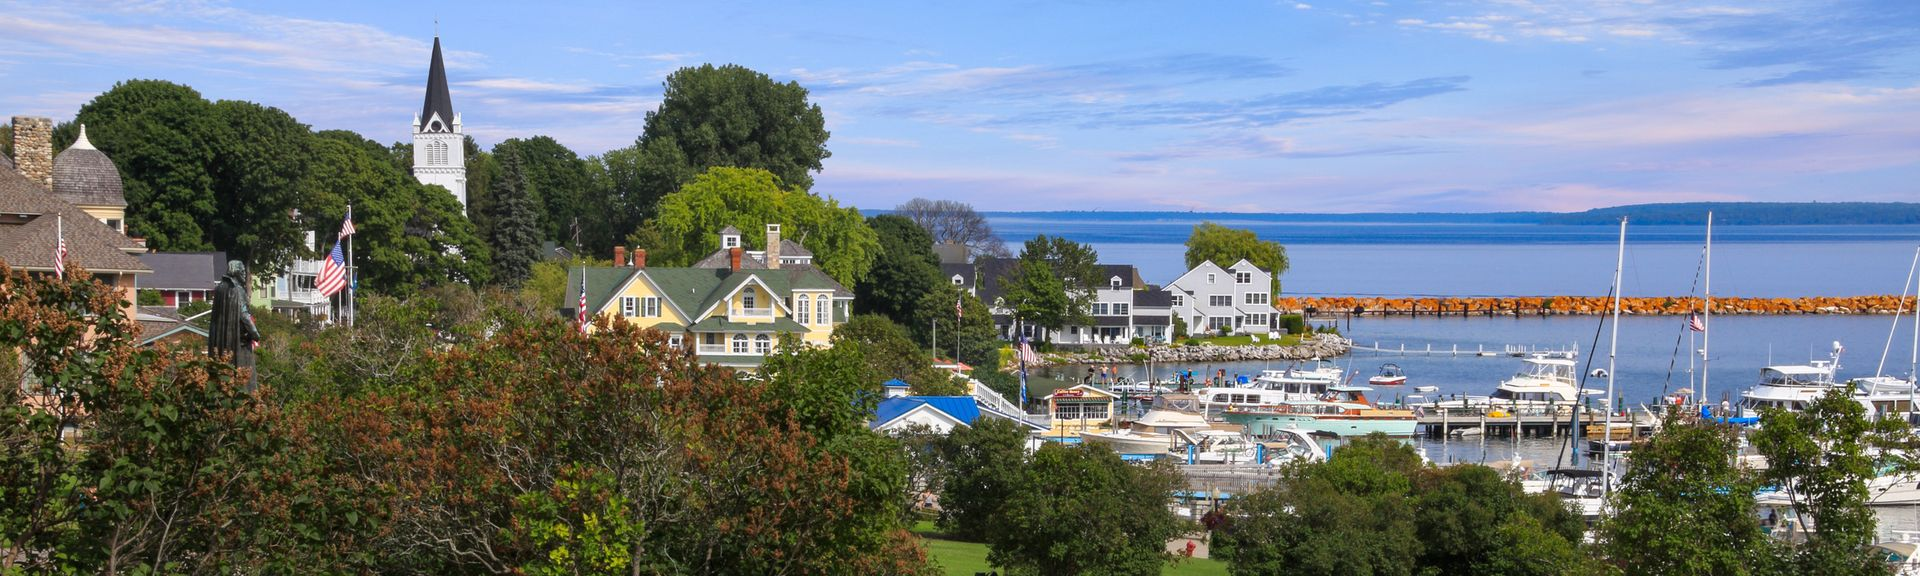 Mackinaw City, Michigan, United States